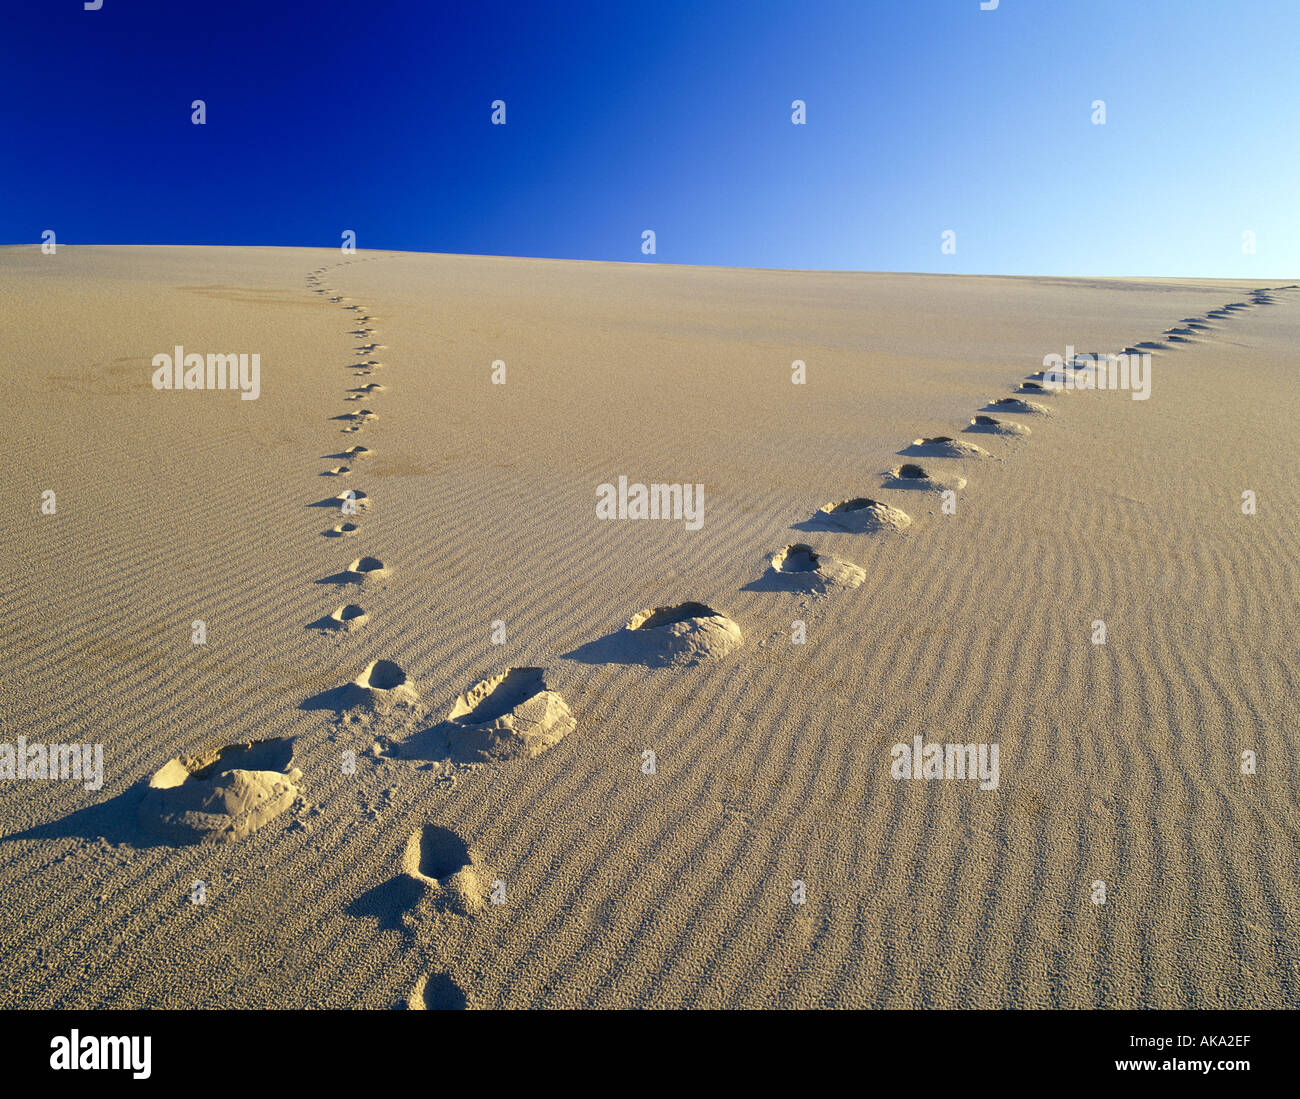 M00403M tiff Footprints up sand dune Oregon Dunes National Recreational Area Oregon - Stock Image